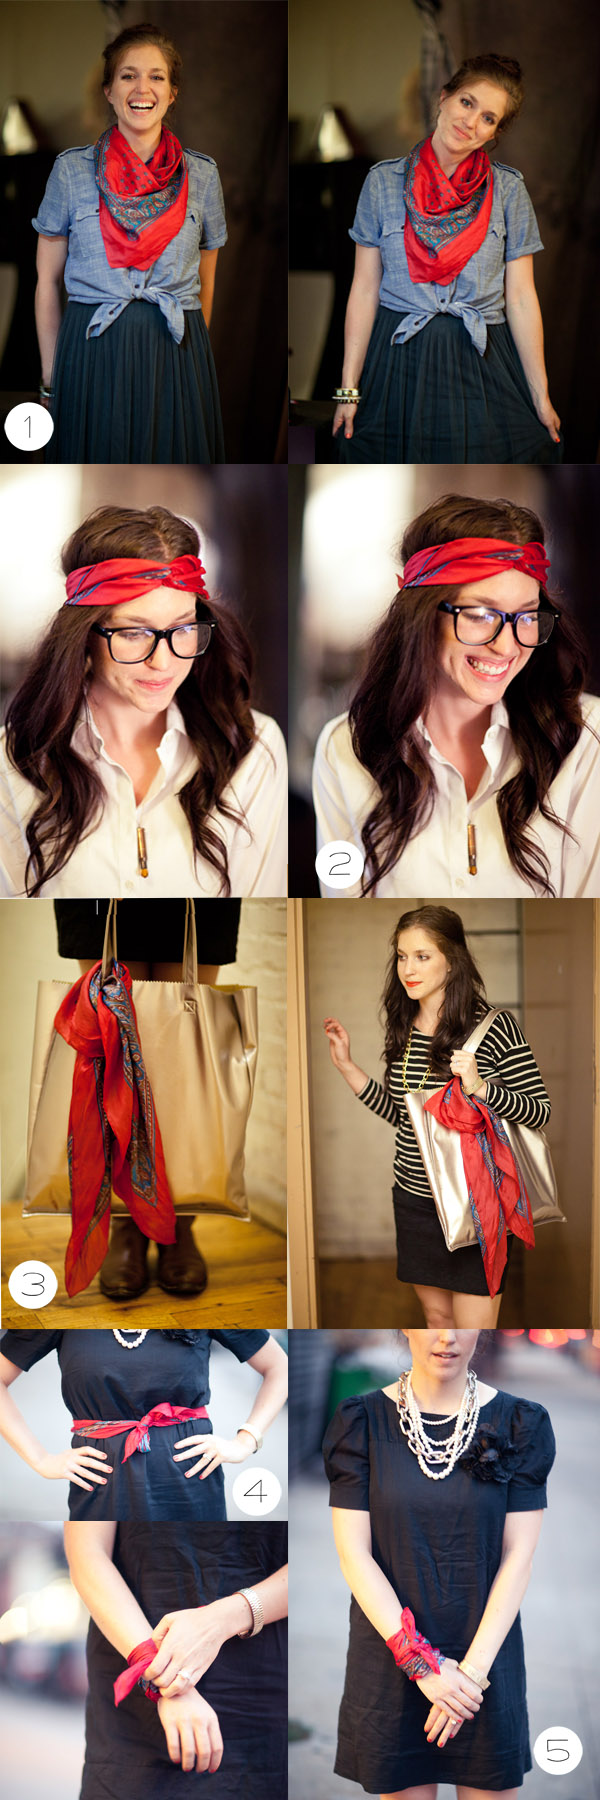 20110829_onescarf5ways.jpg